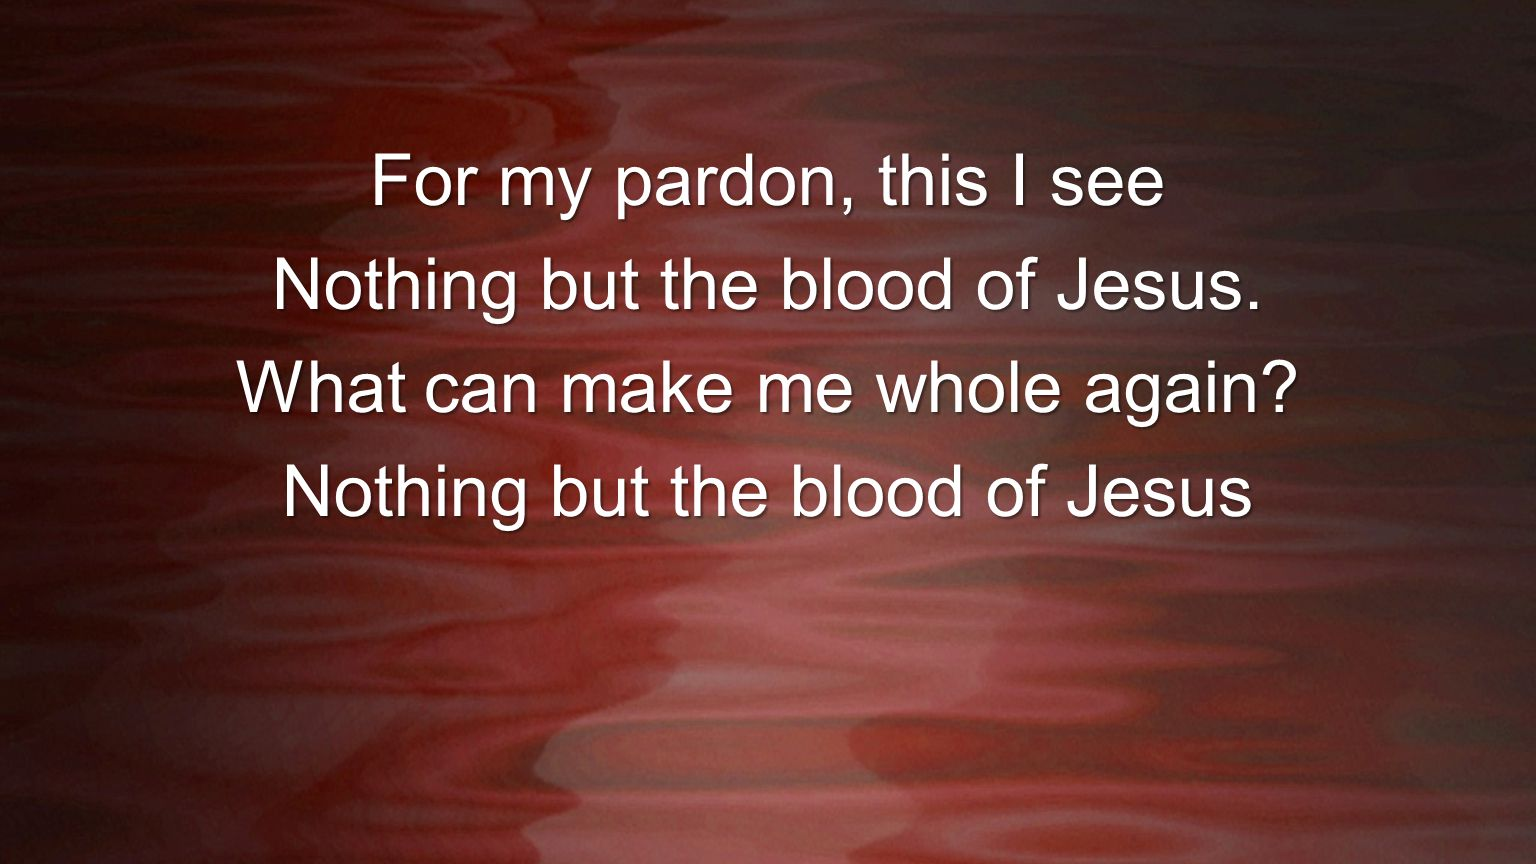 For my pardon, this I see Nothing but the blood of Jesus. What can make me whole again? Nothing but the blood of Jesus